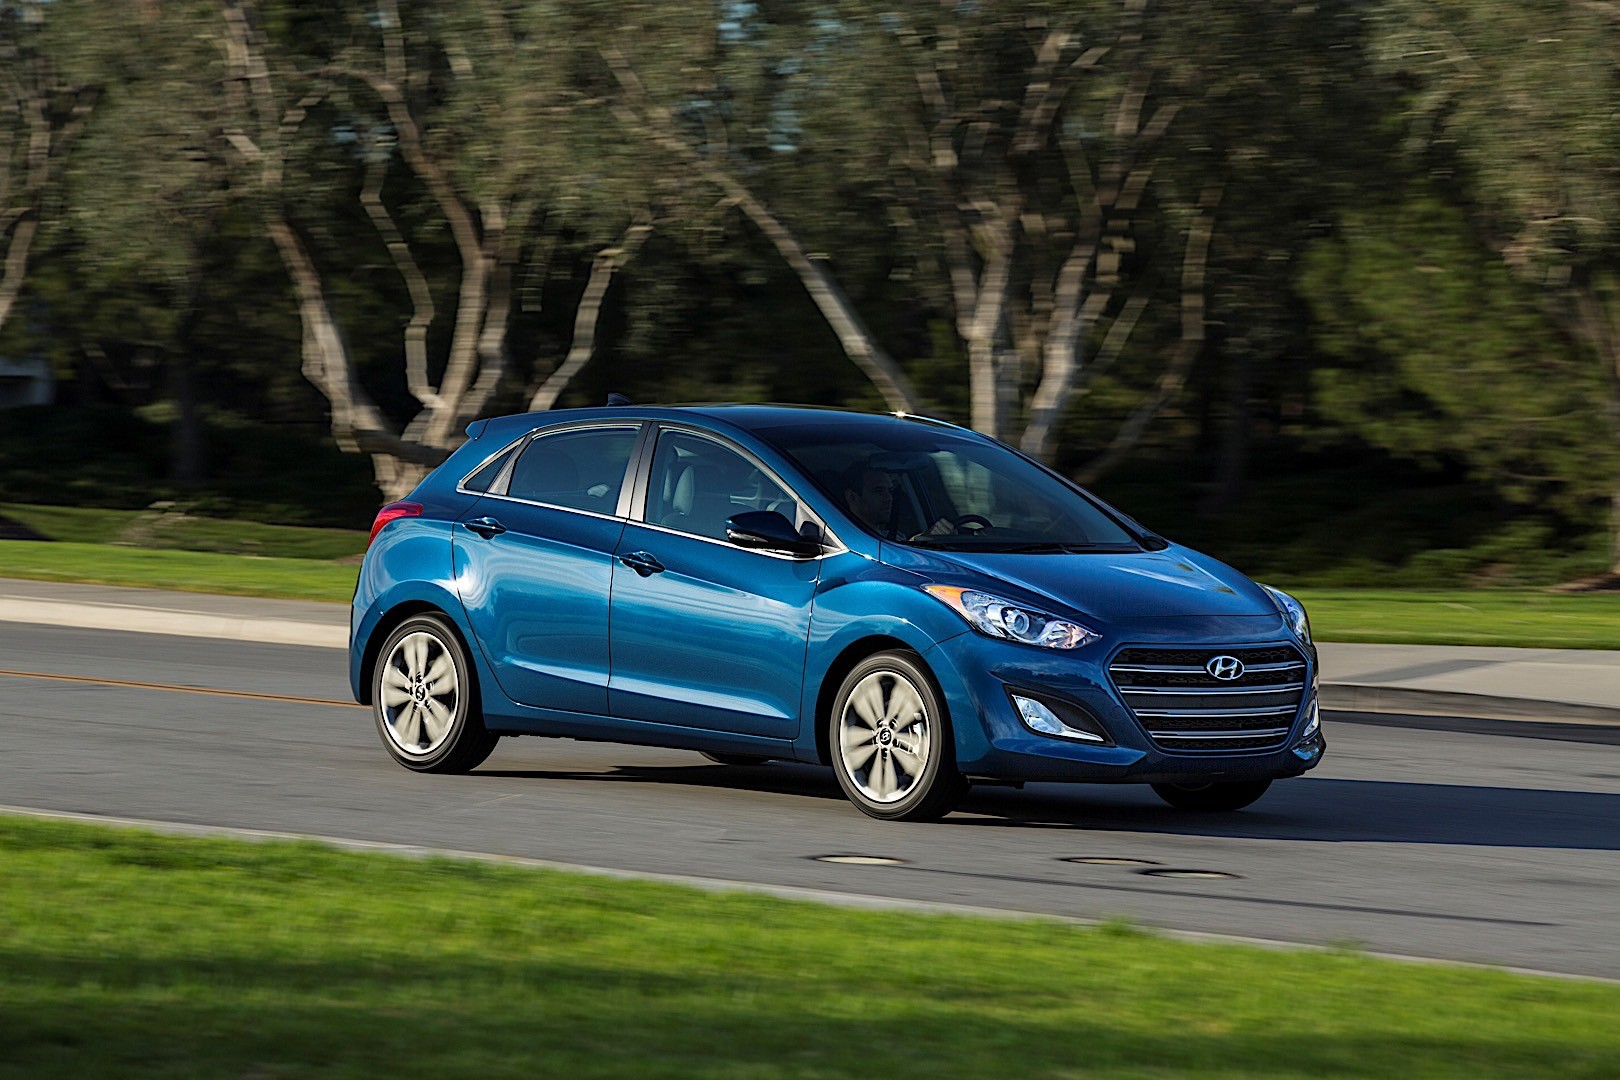 hyundai the gt roadshow elantra out hatchback pictures check